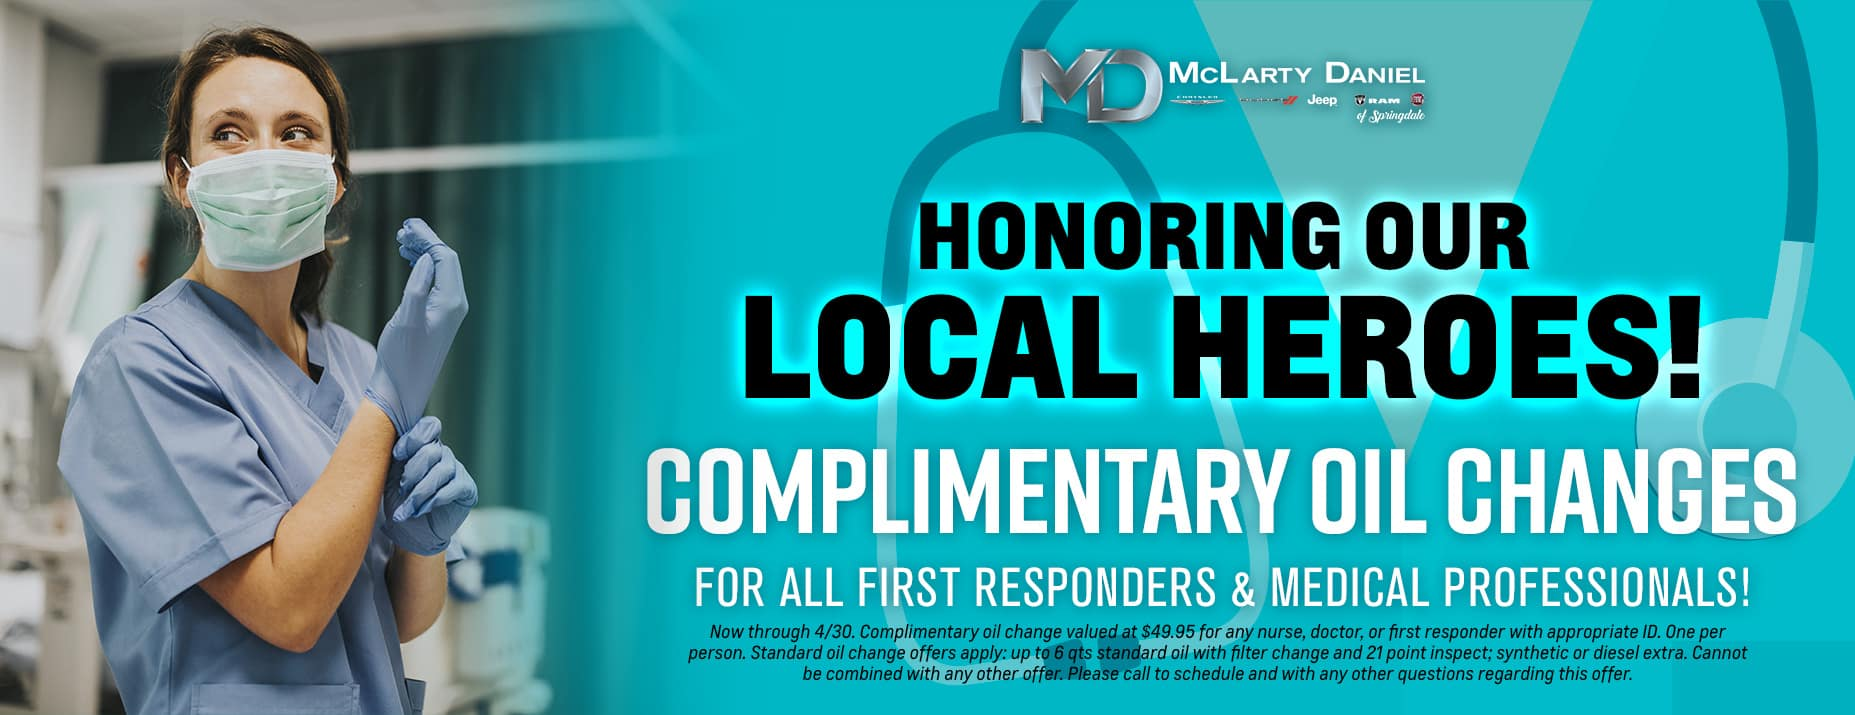 HONORING OUR LOCAL HEROES - Nurses, Paramedics, Doctors, and First Responders